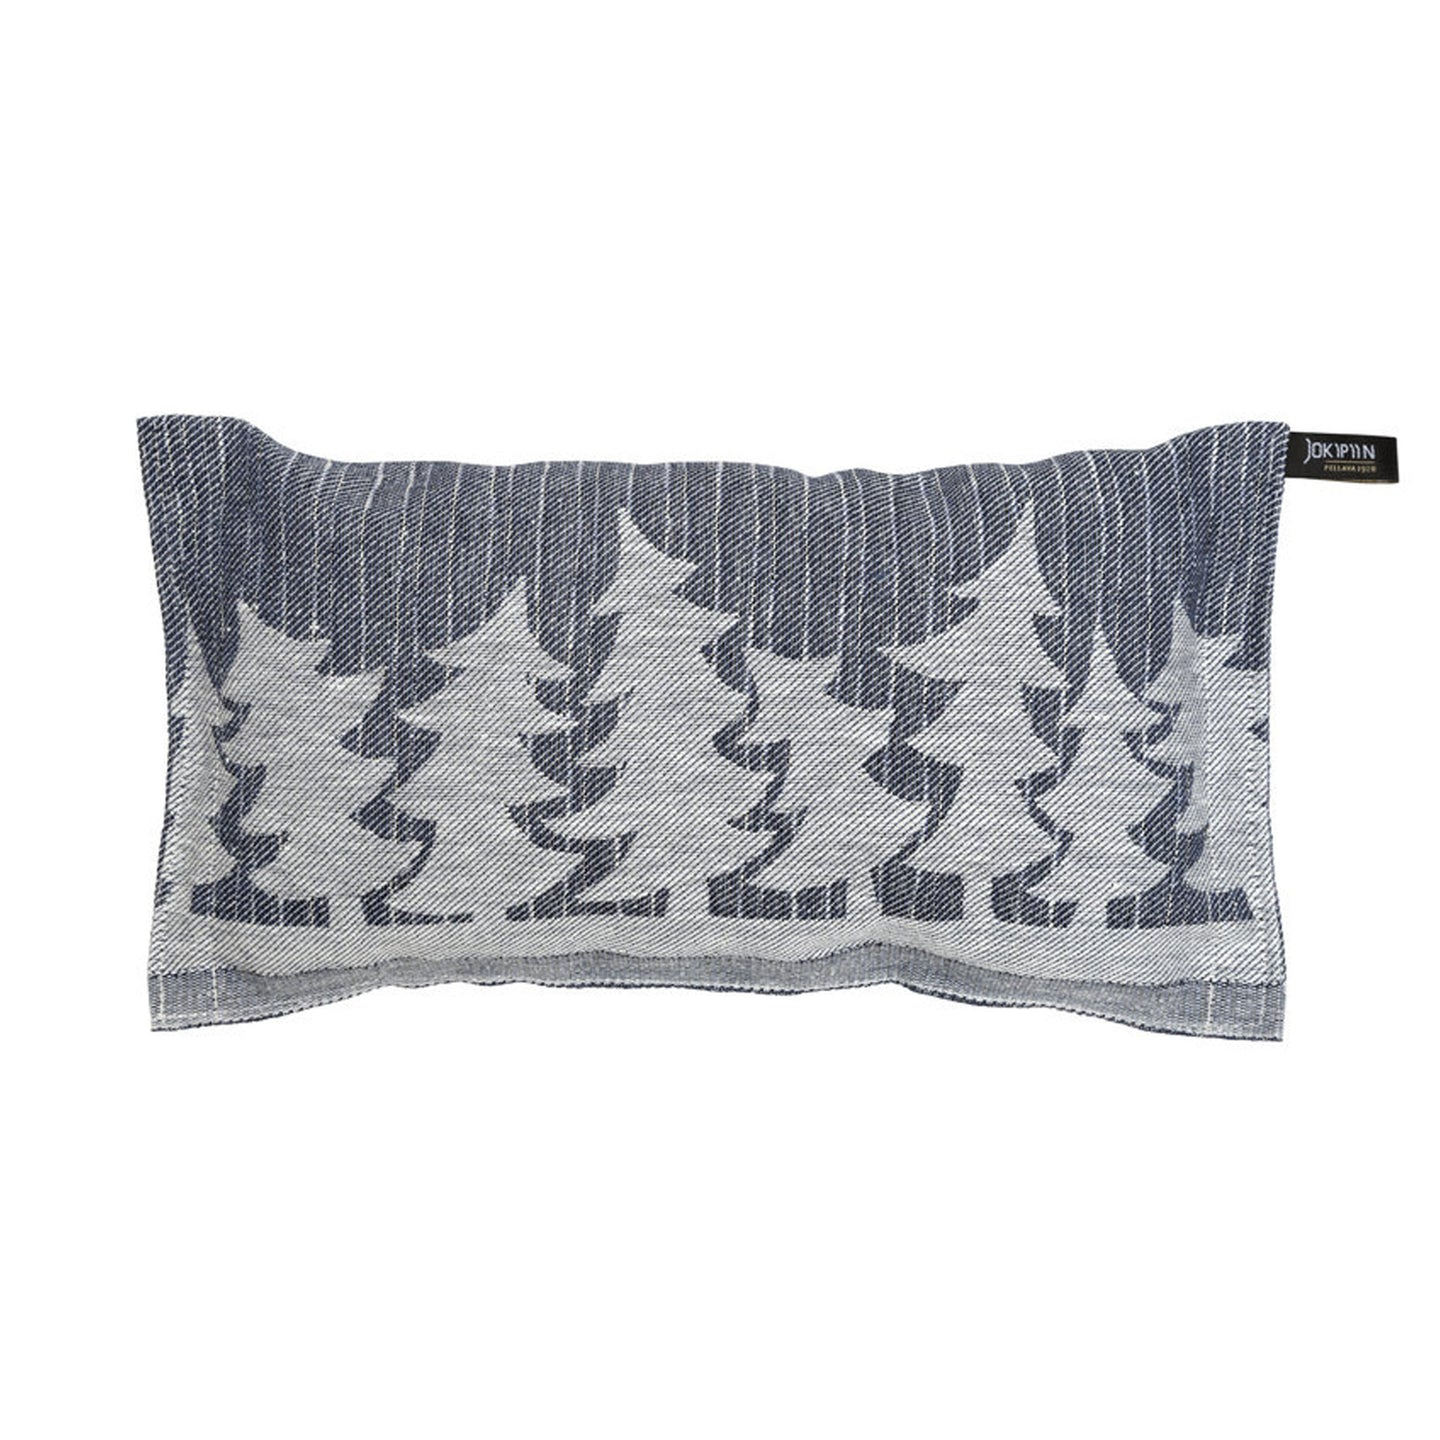 Kuusimetsä Sauna Pillow Dark Blue by Jokipiin Pellava Default Title Sauna Pillow Finnmark Sauna